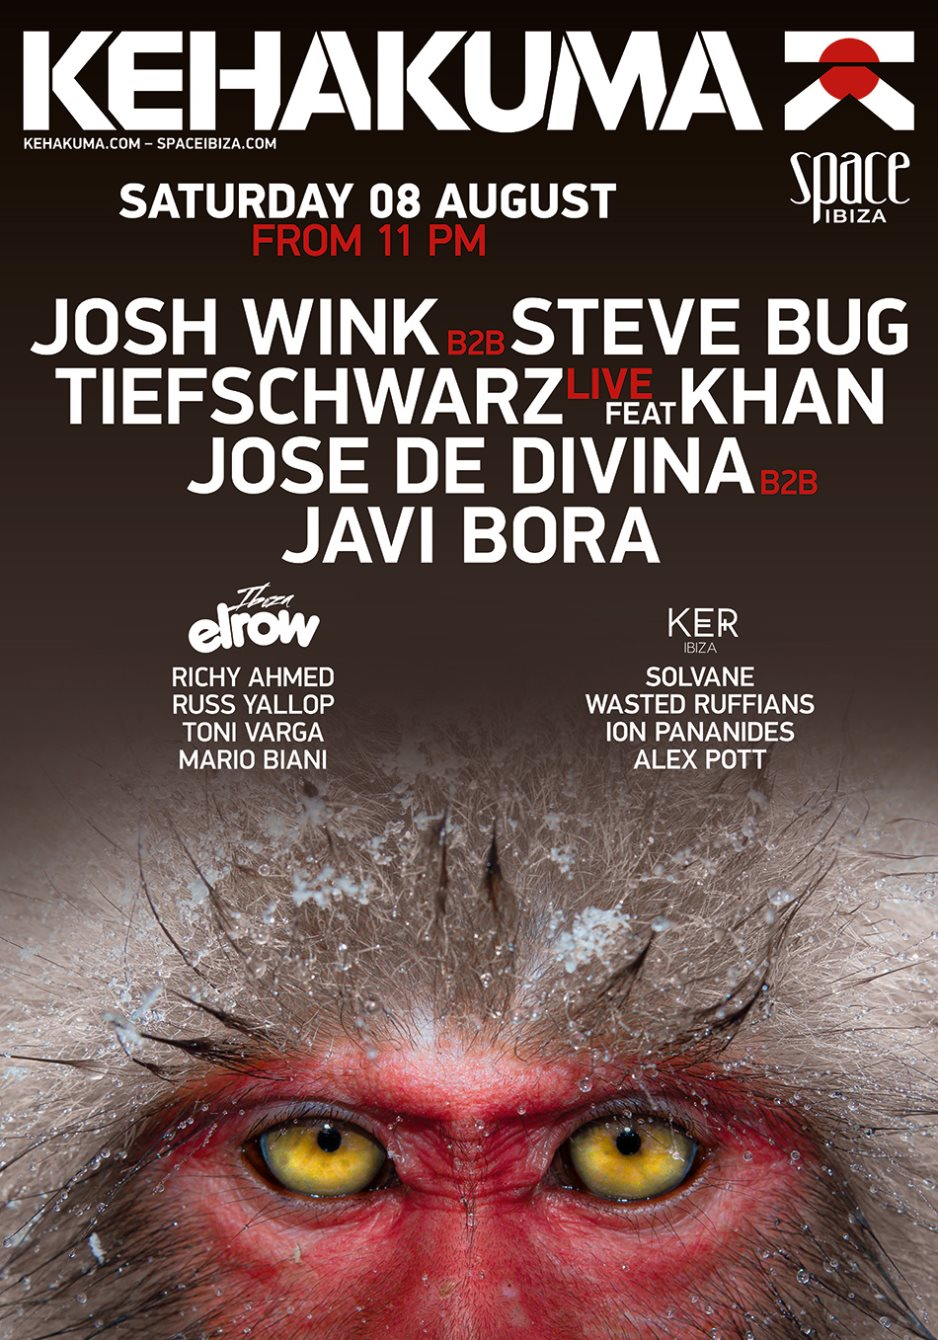 Tiefschwarz feat. Khan - Kehakuma at Space, Ibiza - 720p HD - 08-Aug-2015